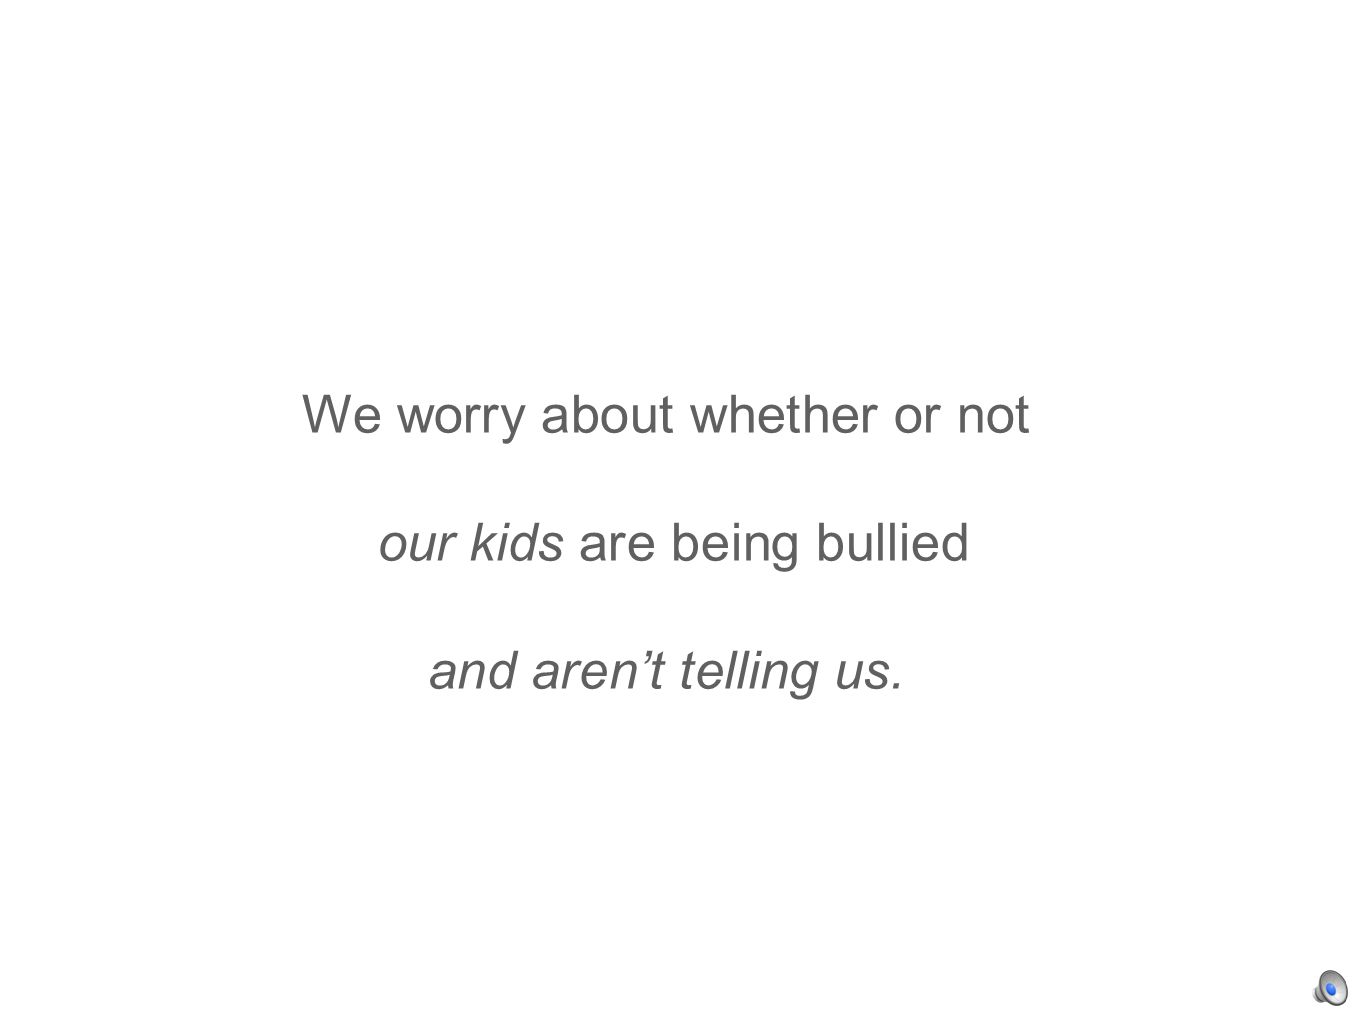 We worry about whether or not our kids are being bullied and arent telling us.